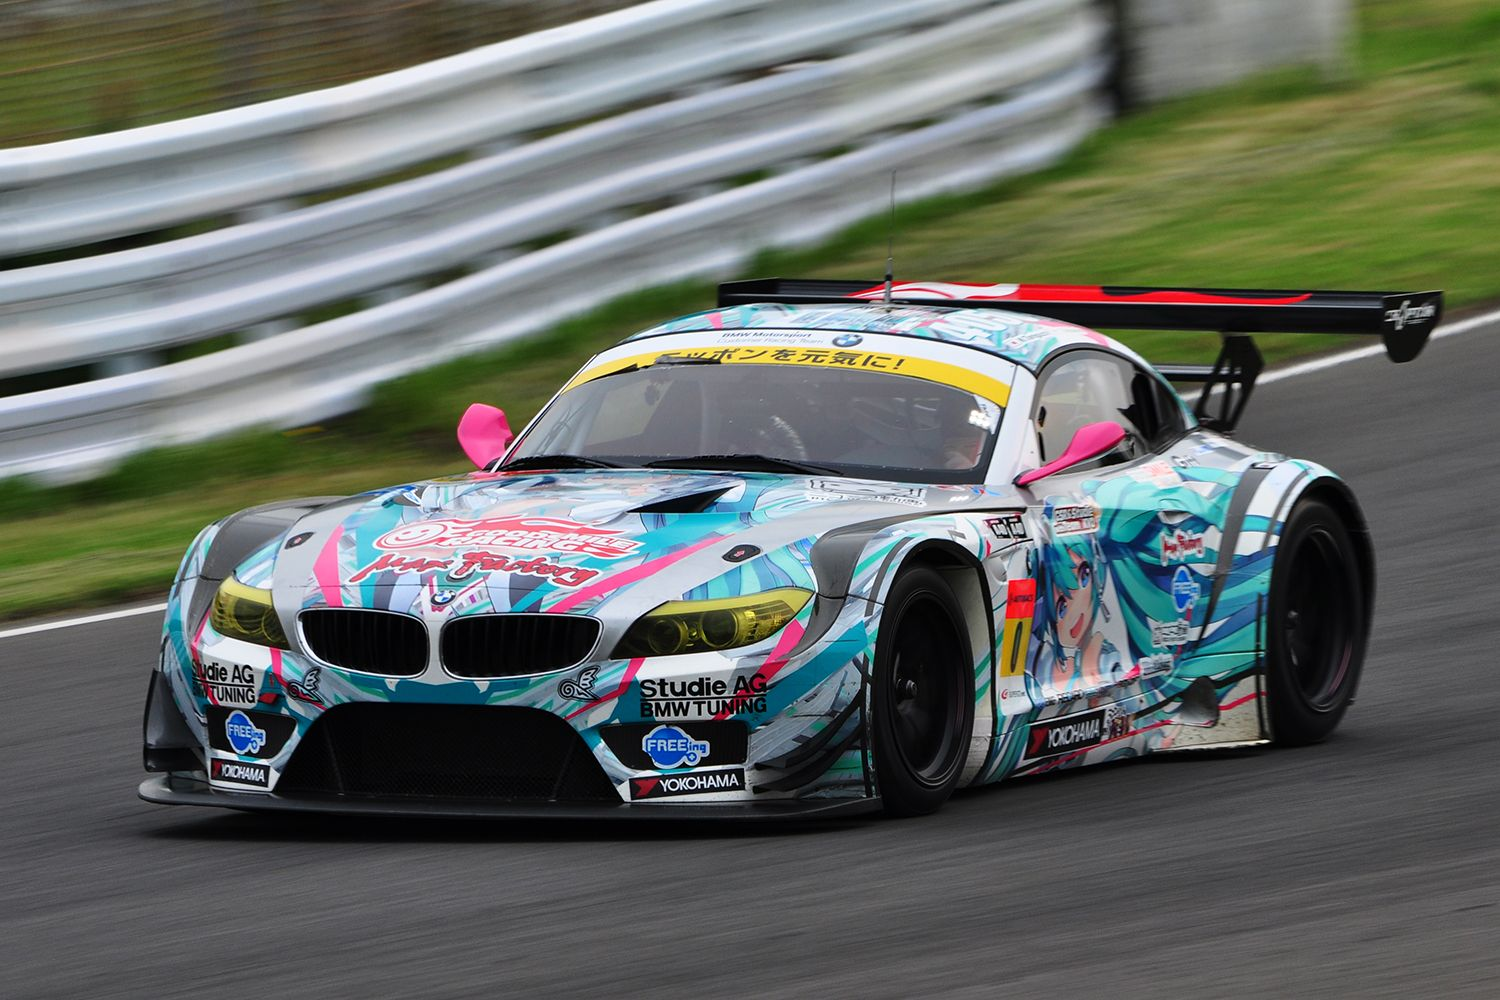 2012 super gt bmw z4 gt3 goodsmile racing cars i love pinterest bmw z4 bmw and cars. Black Bedroom Furniture Sets. Home Design Ideas